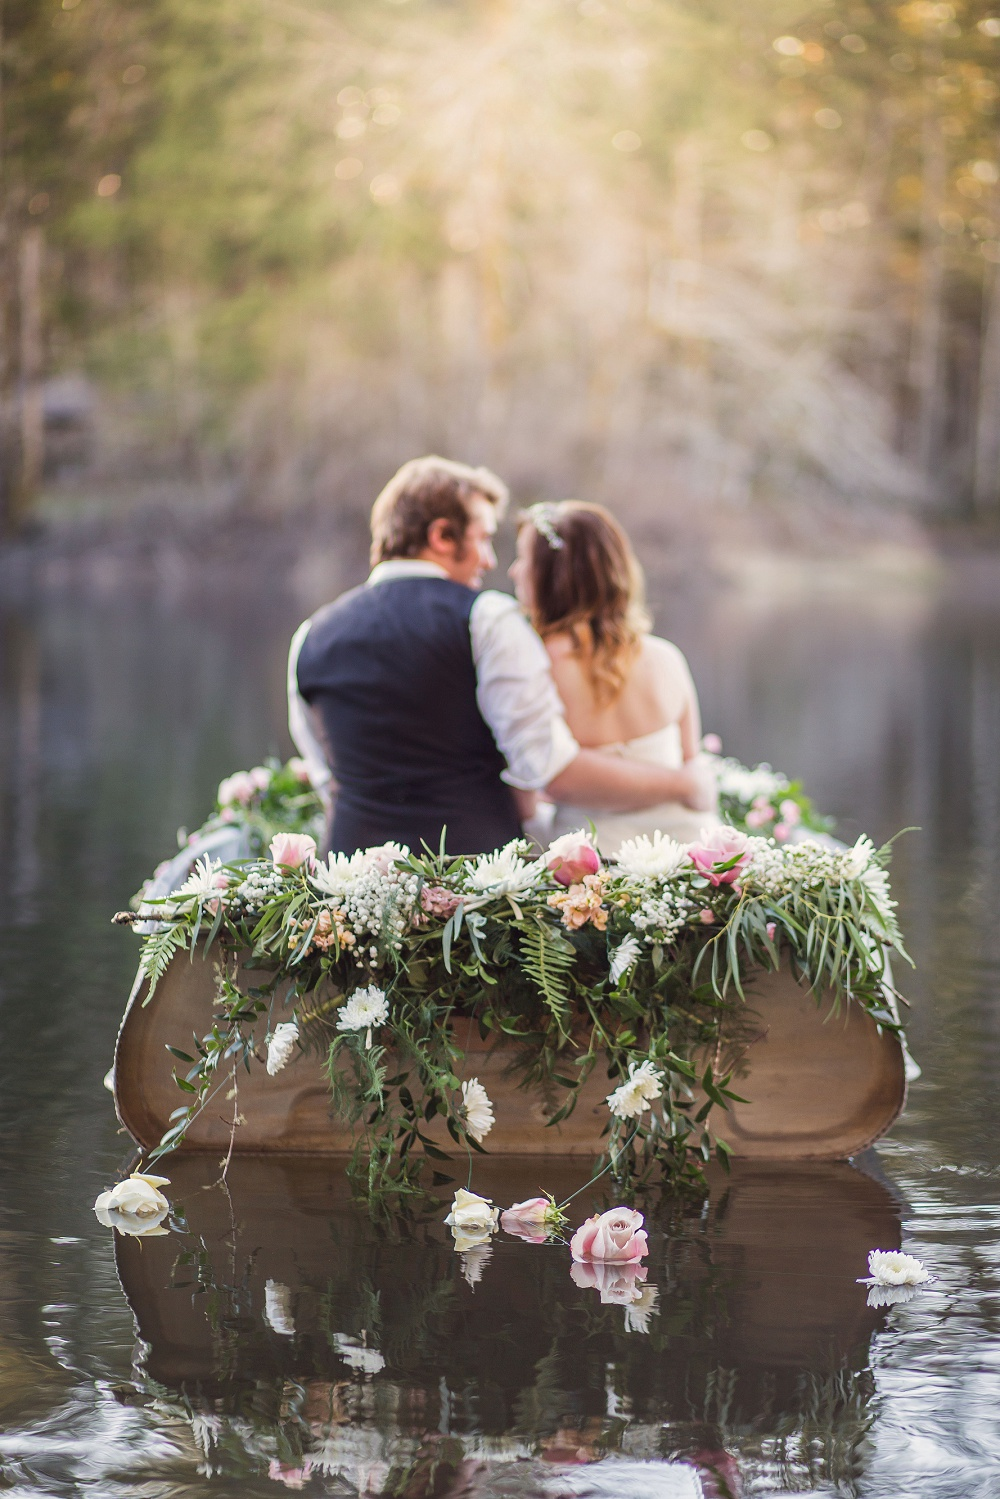 Canoe_with_flowers_wedding_photography.jpg